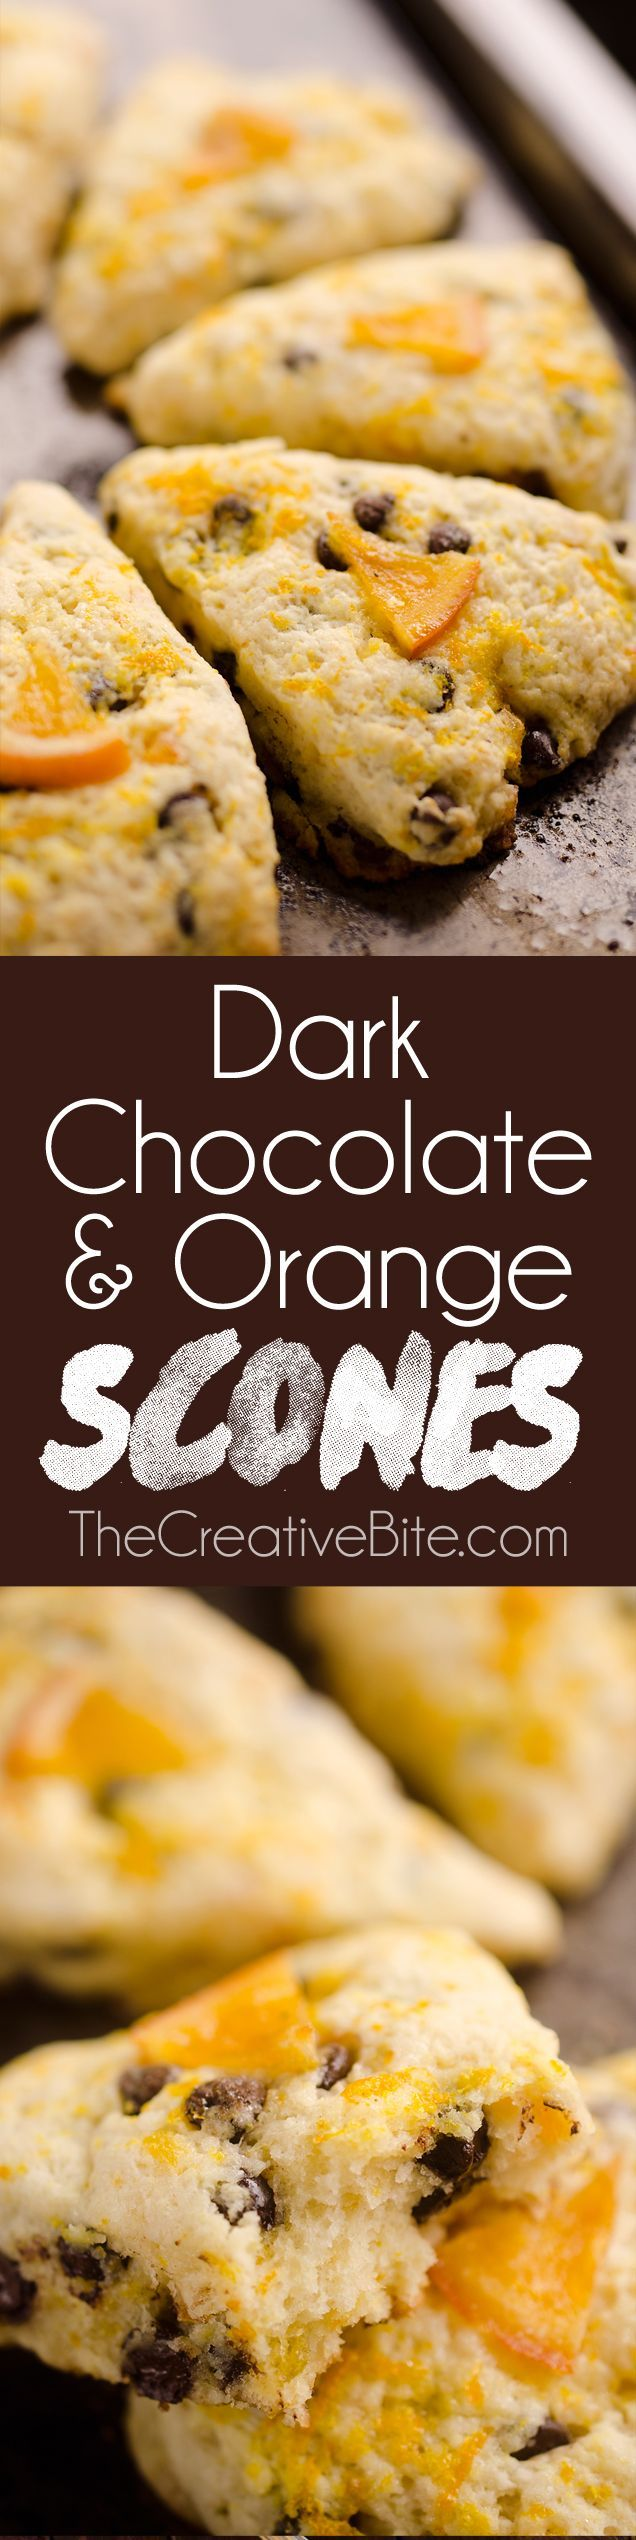 Dark Chocolate & Orange Scones are soft and tender cake-like treats with a bright citrus flavor paired with rich dark chocolate. Serve them for breakfast, brunch or dessert, they are sure to be a hit! #Orange #Scones #Brunch